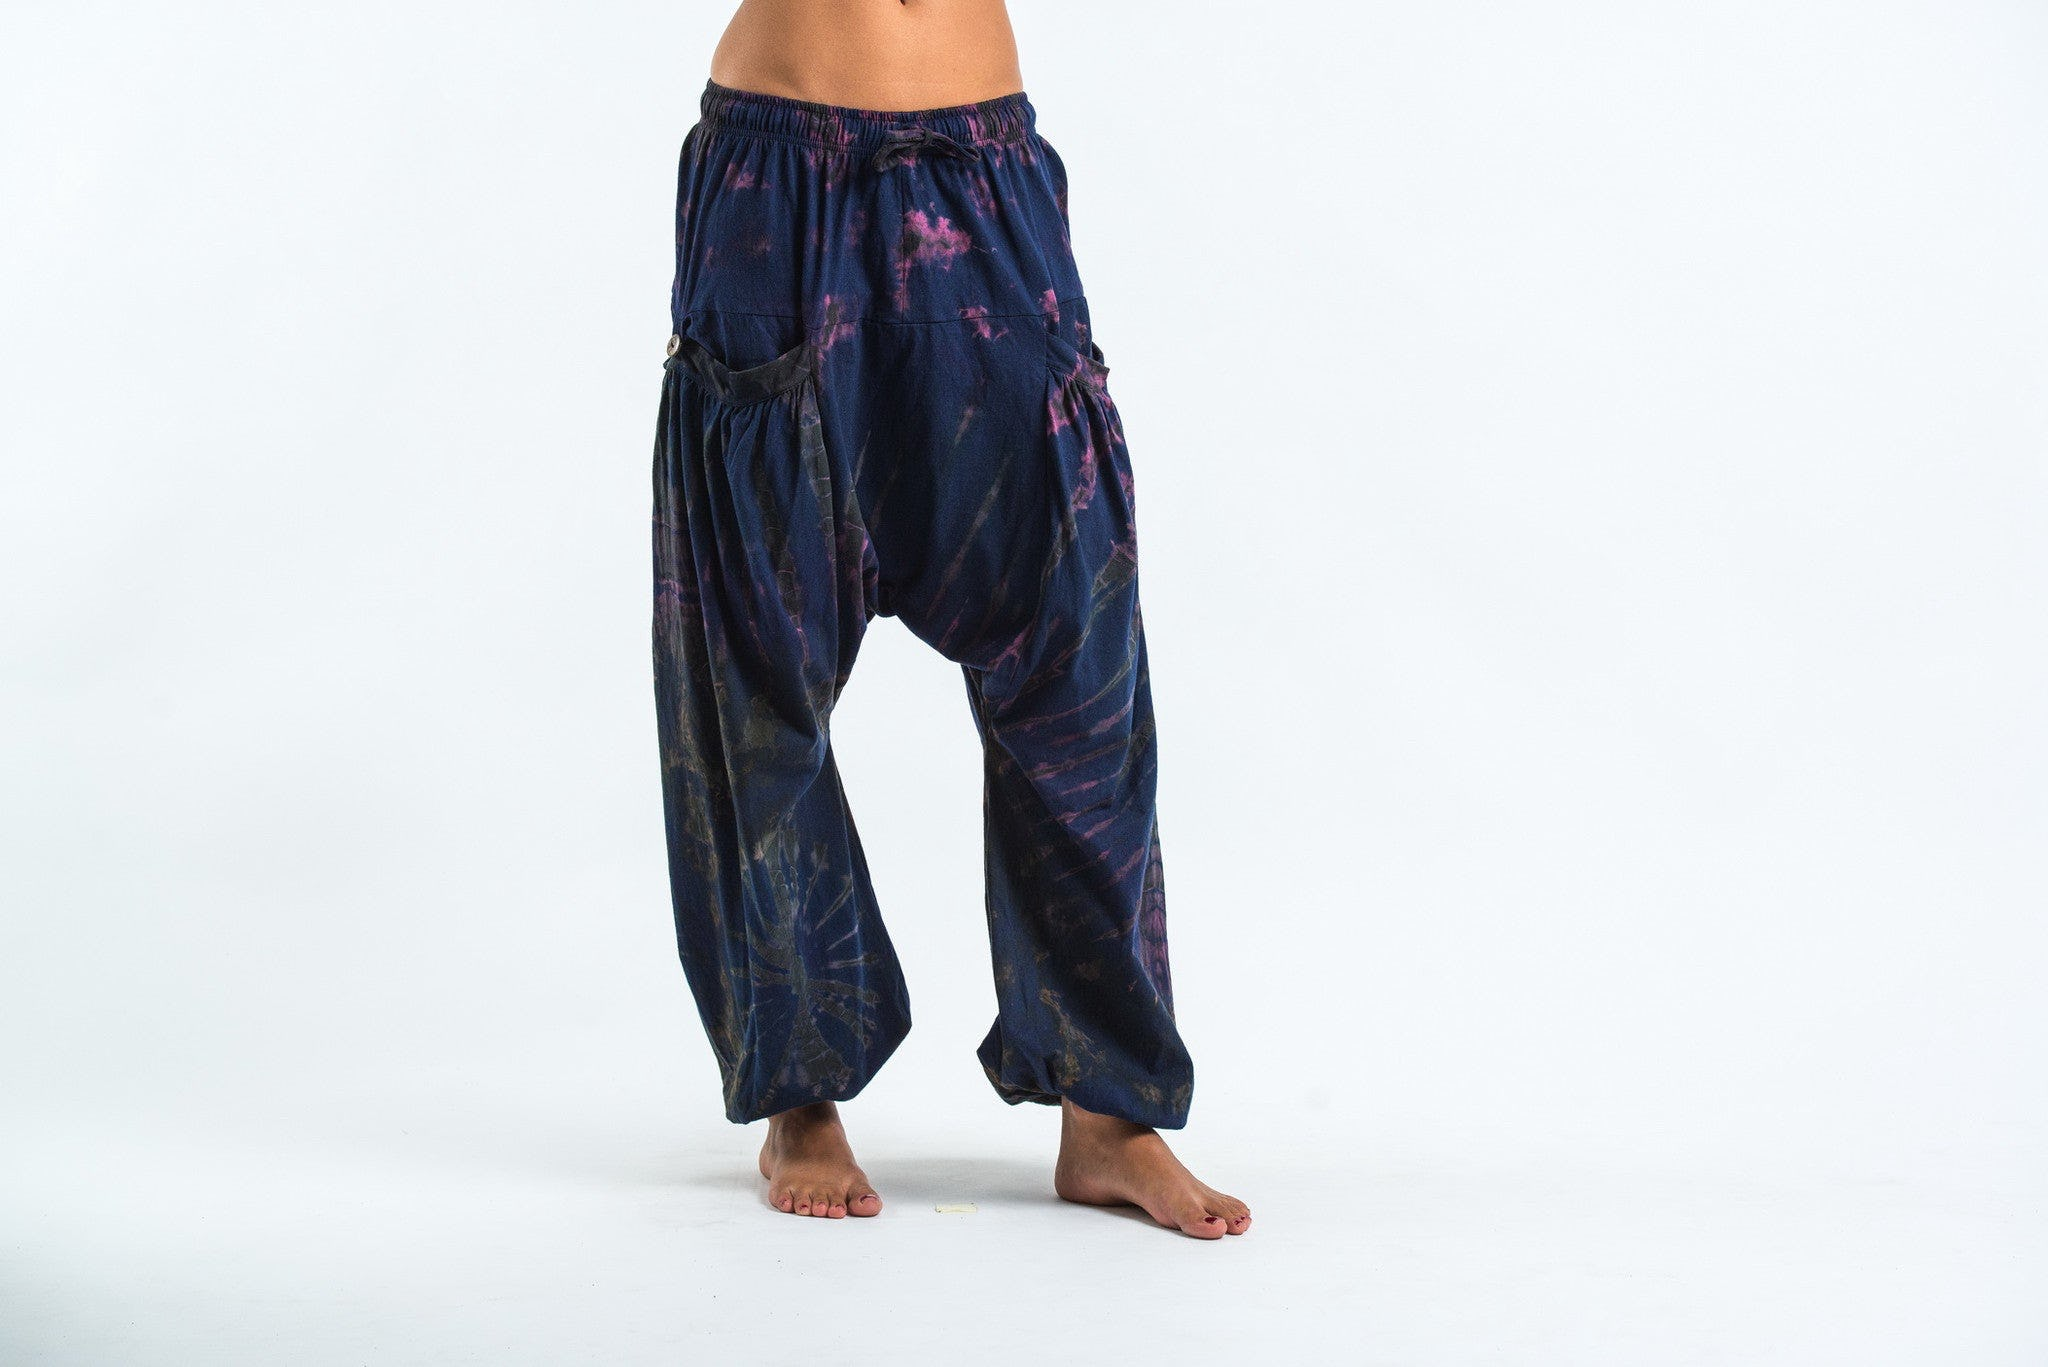 Popular Step To The World Of FASHION WHEN HAREM PANTS INSPIRED ME